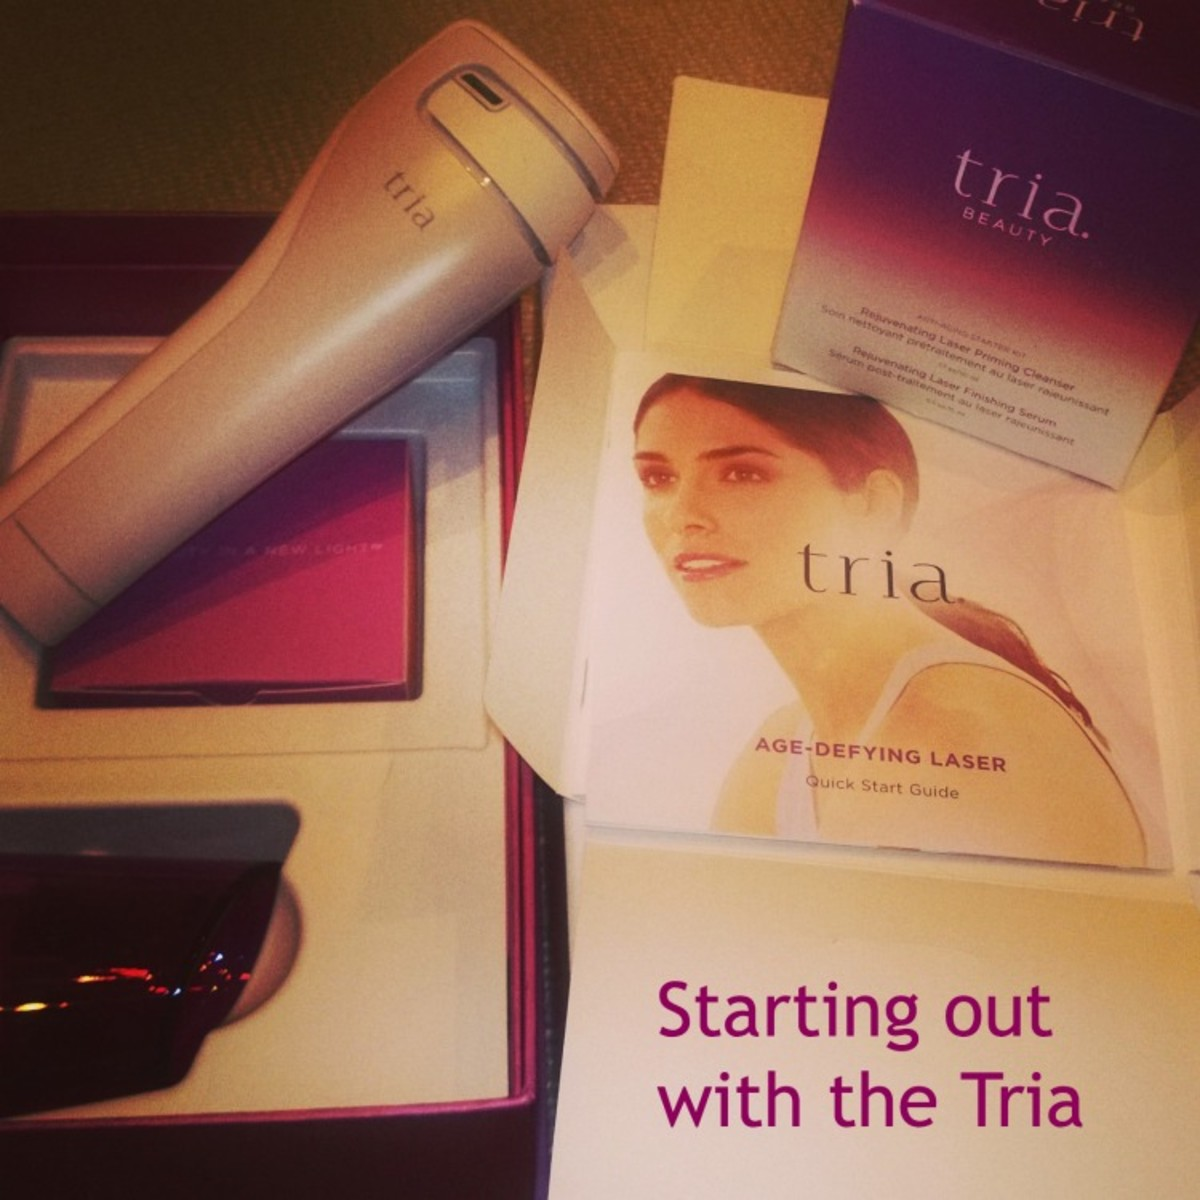 tria age laser instructions